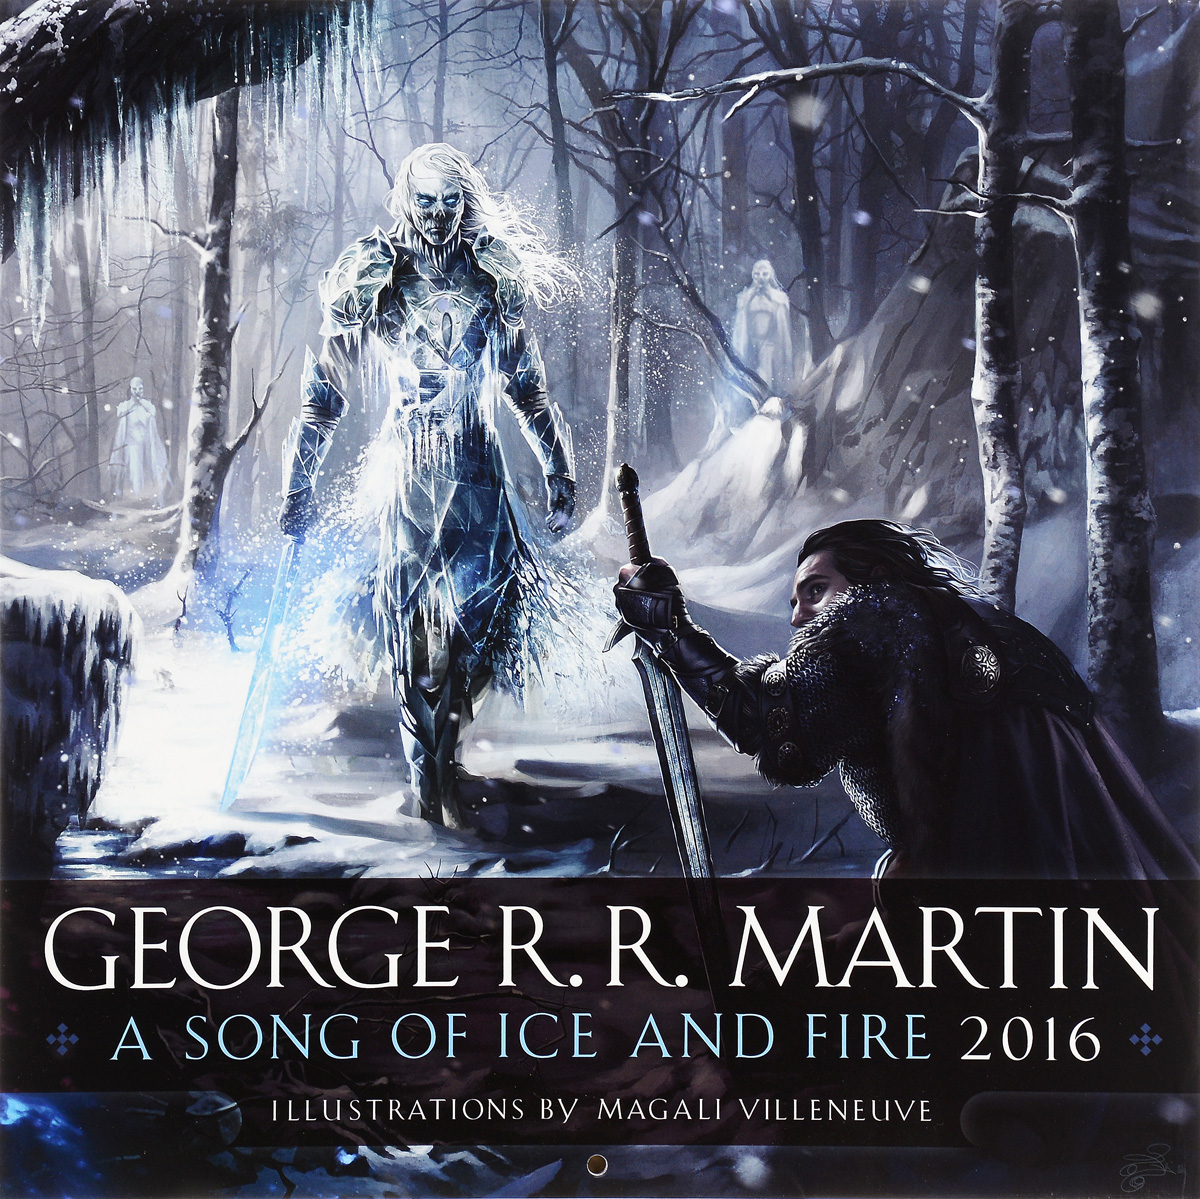 SONG OF ICE AND FIRE 2016 a song for summer